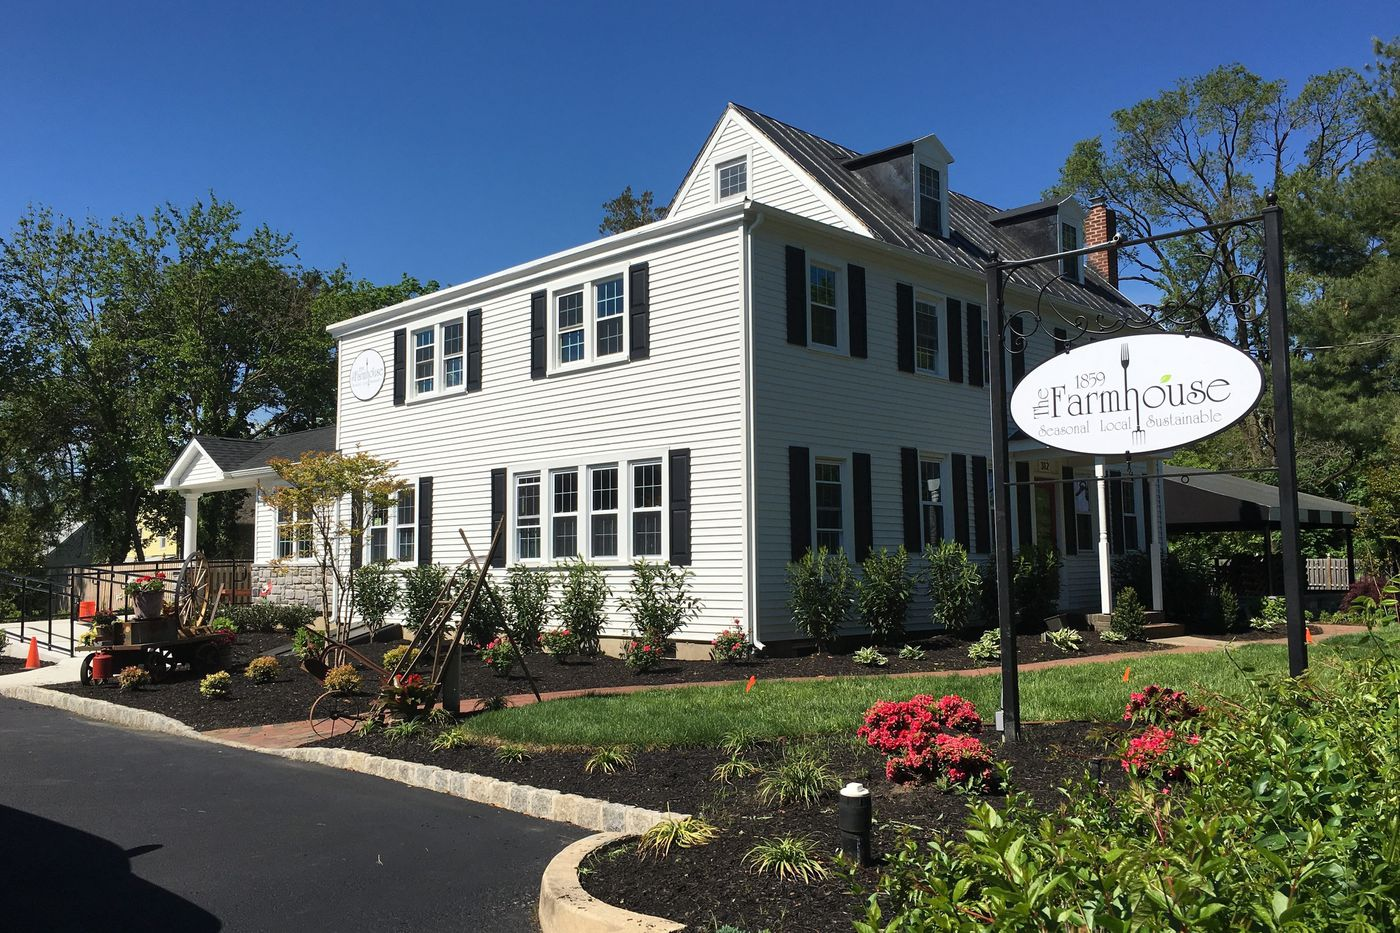 The Farmhouse in Cherry Hill has closed